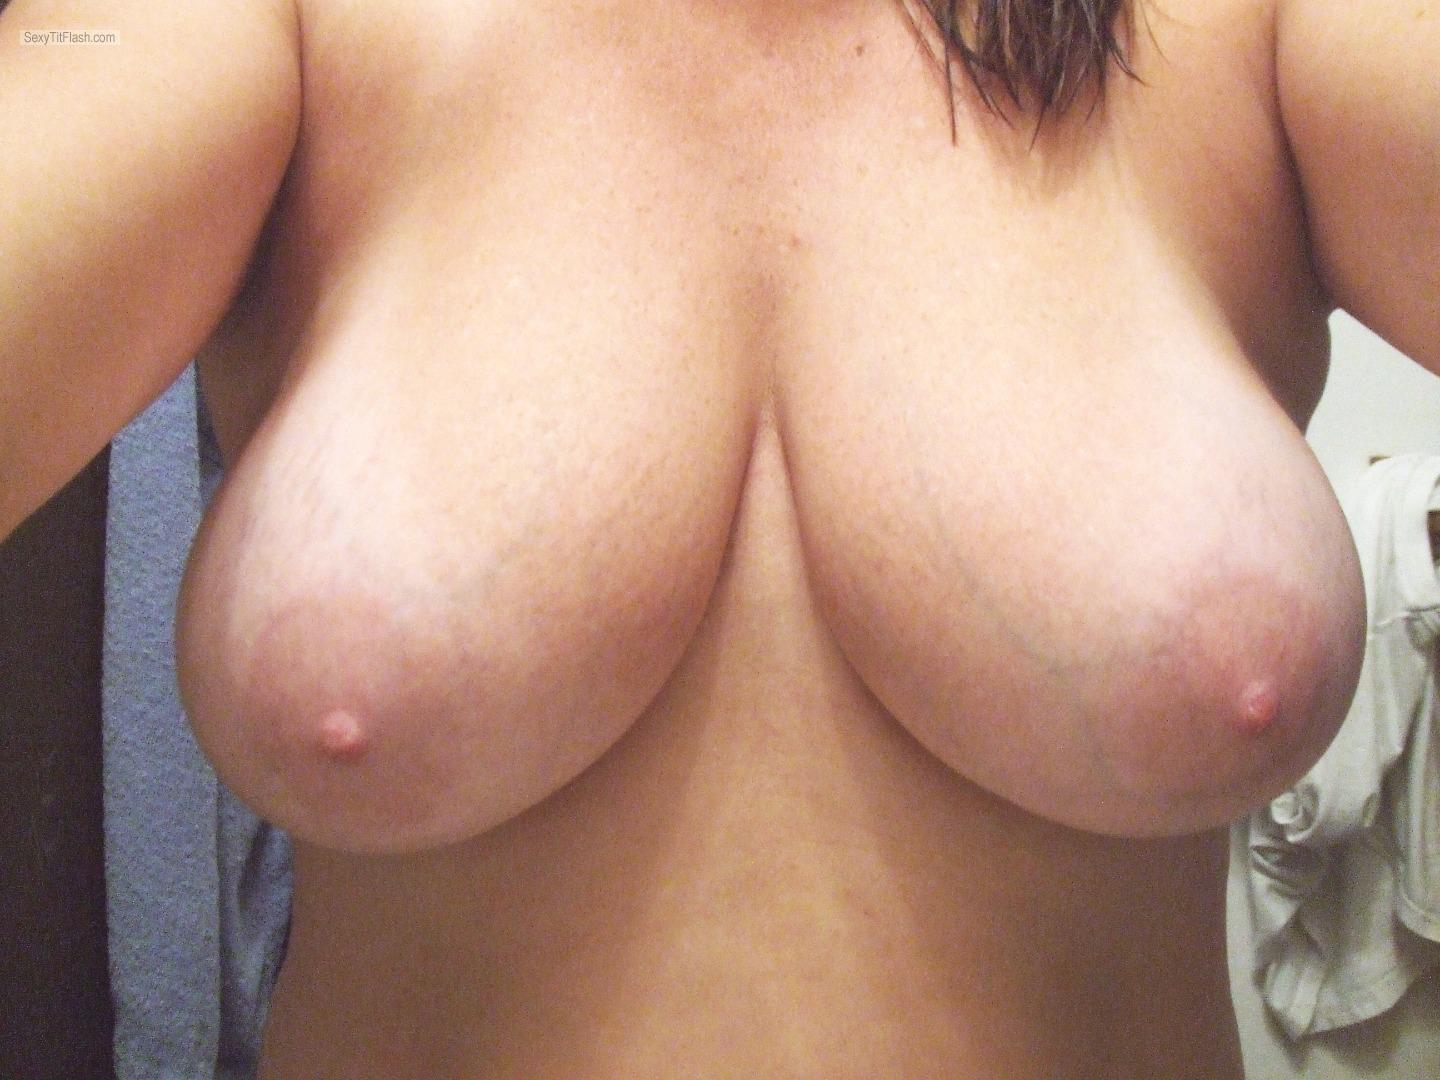 Tit Flash: My Big Tits (Selfie) - Jabbas from United Kingdom